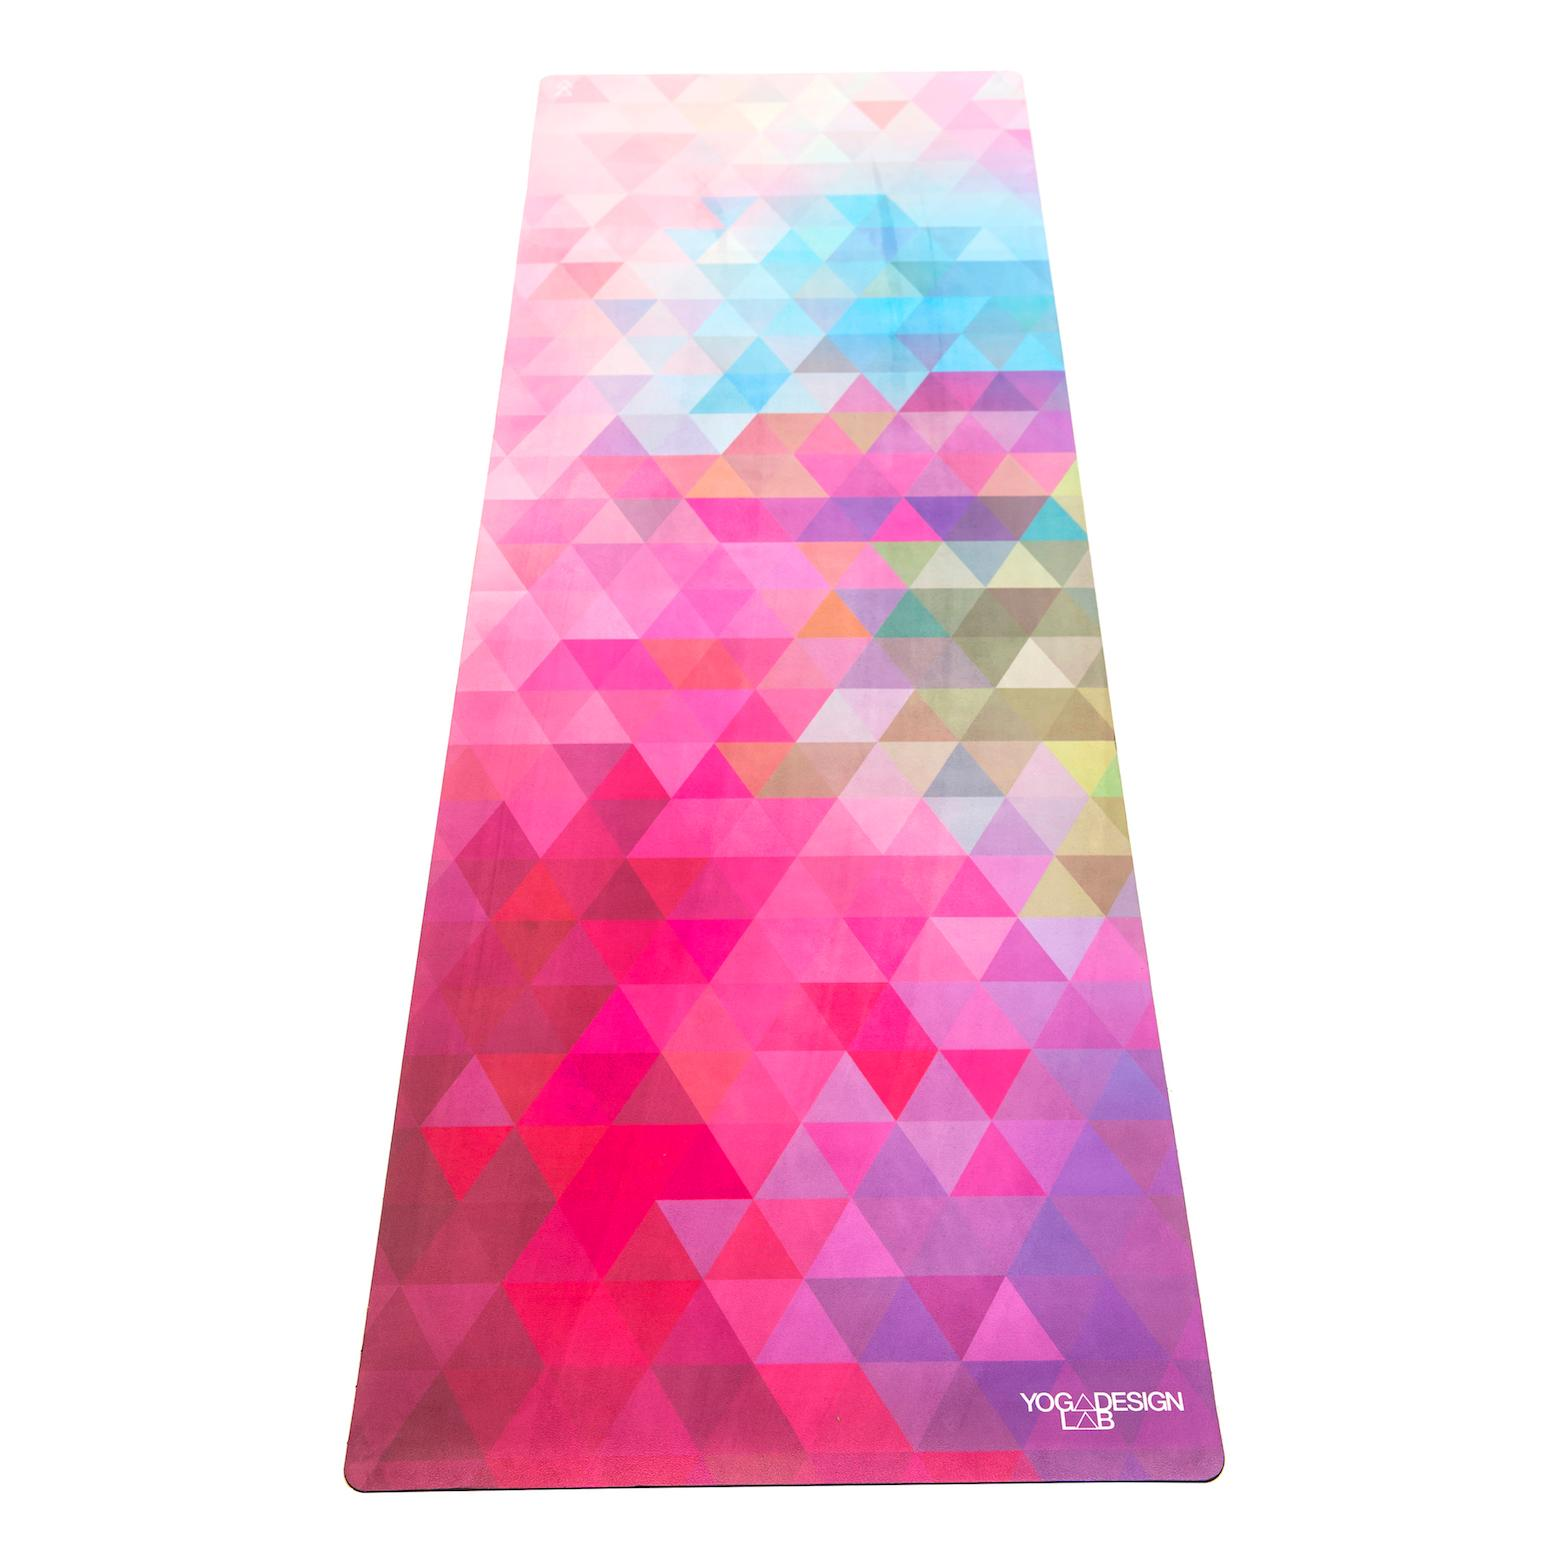 1.5mm Travel Yoga Mat - Tribeca Sand